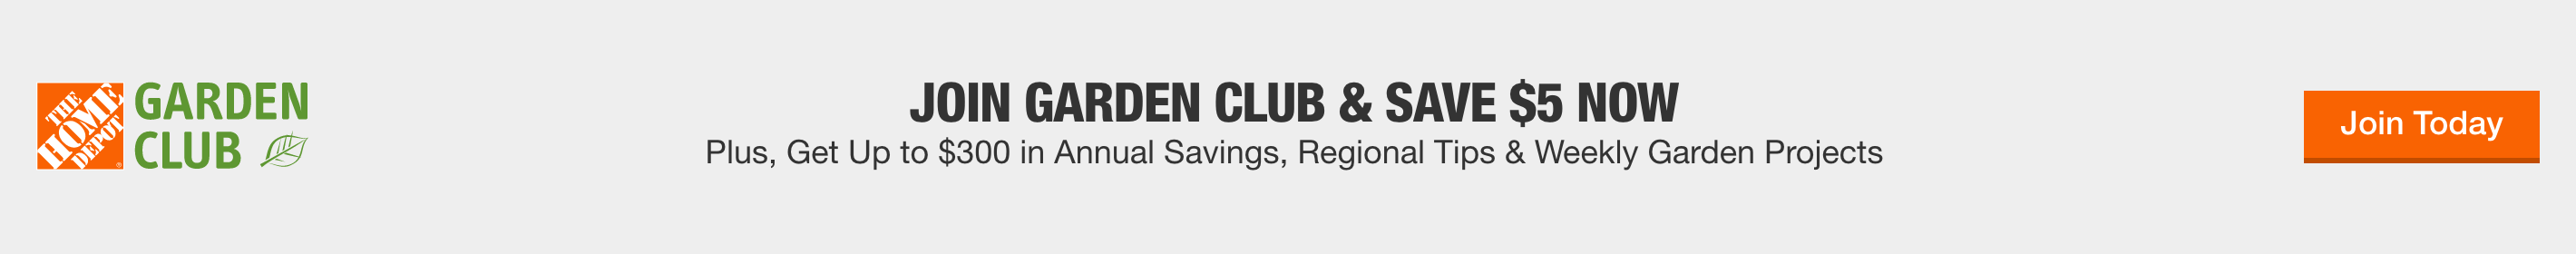 JOIN GARDEN CLUB & SAVE $5 NOW Plus, get up to $300 in annual savings, regional tips and weekly garden projects